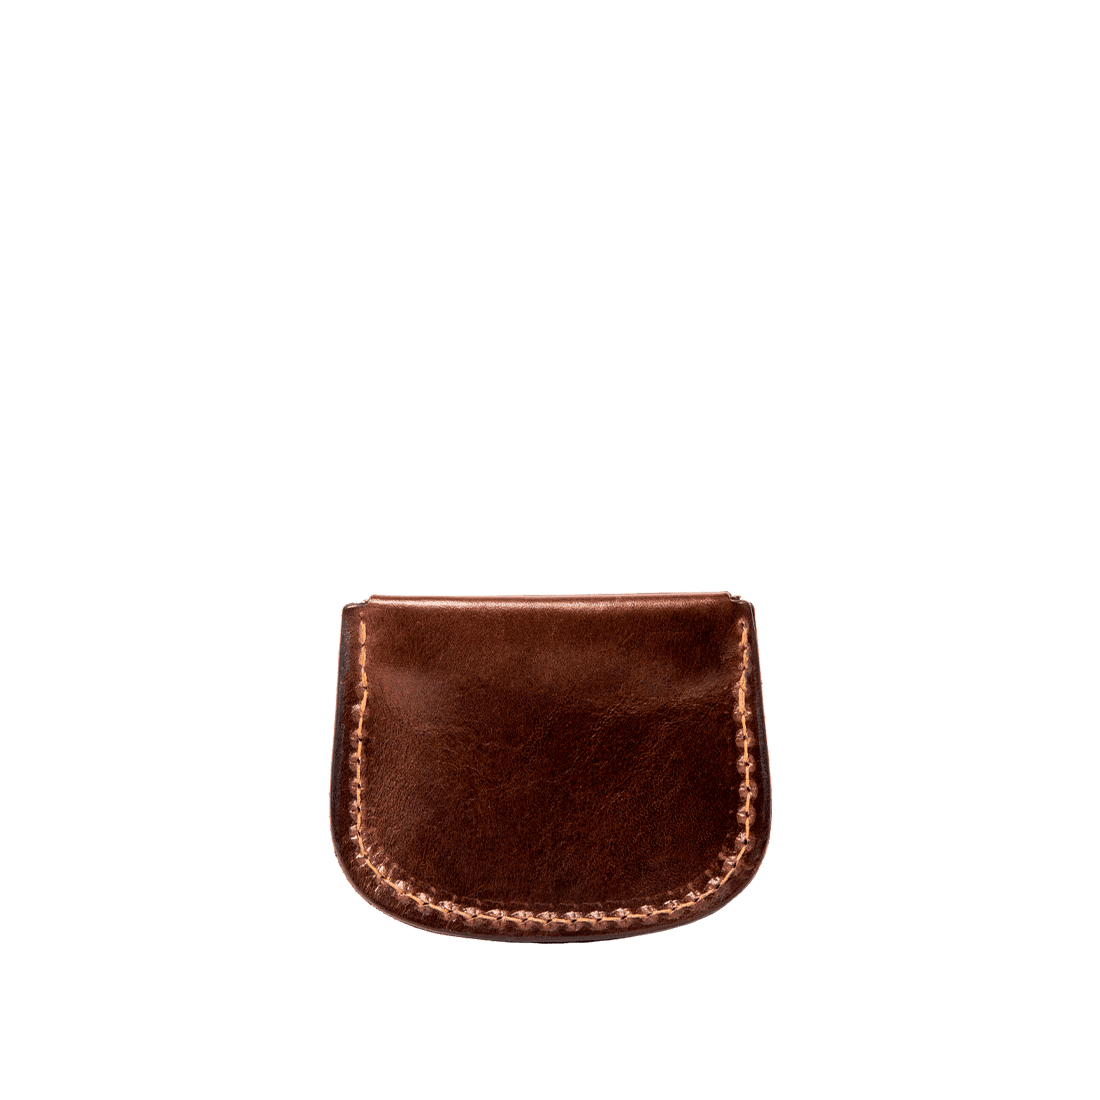 Coin purse shiny brown